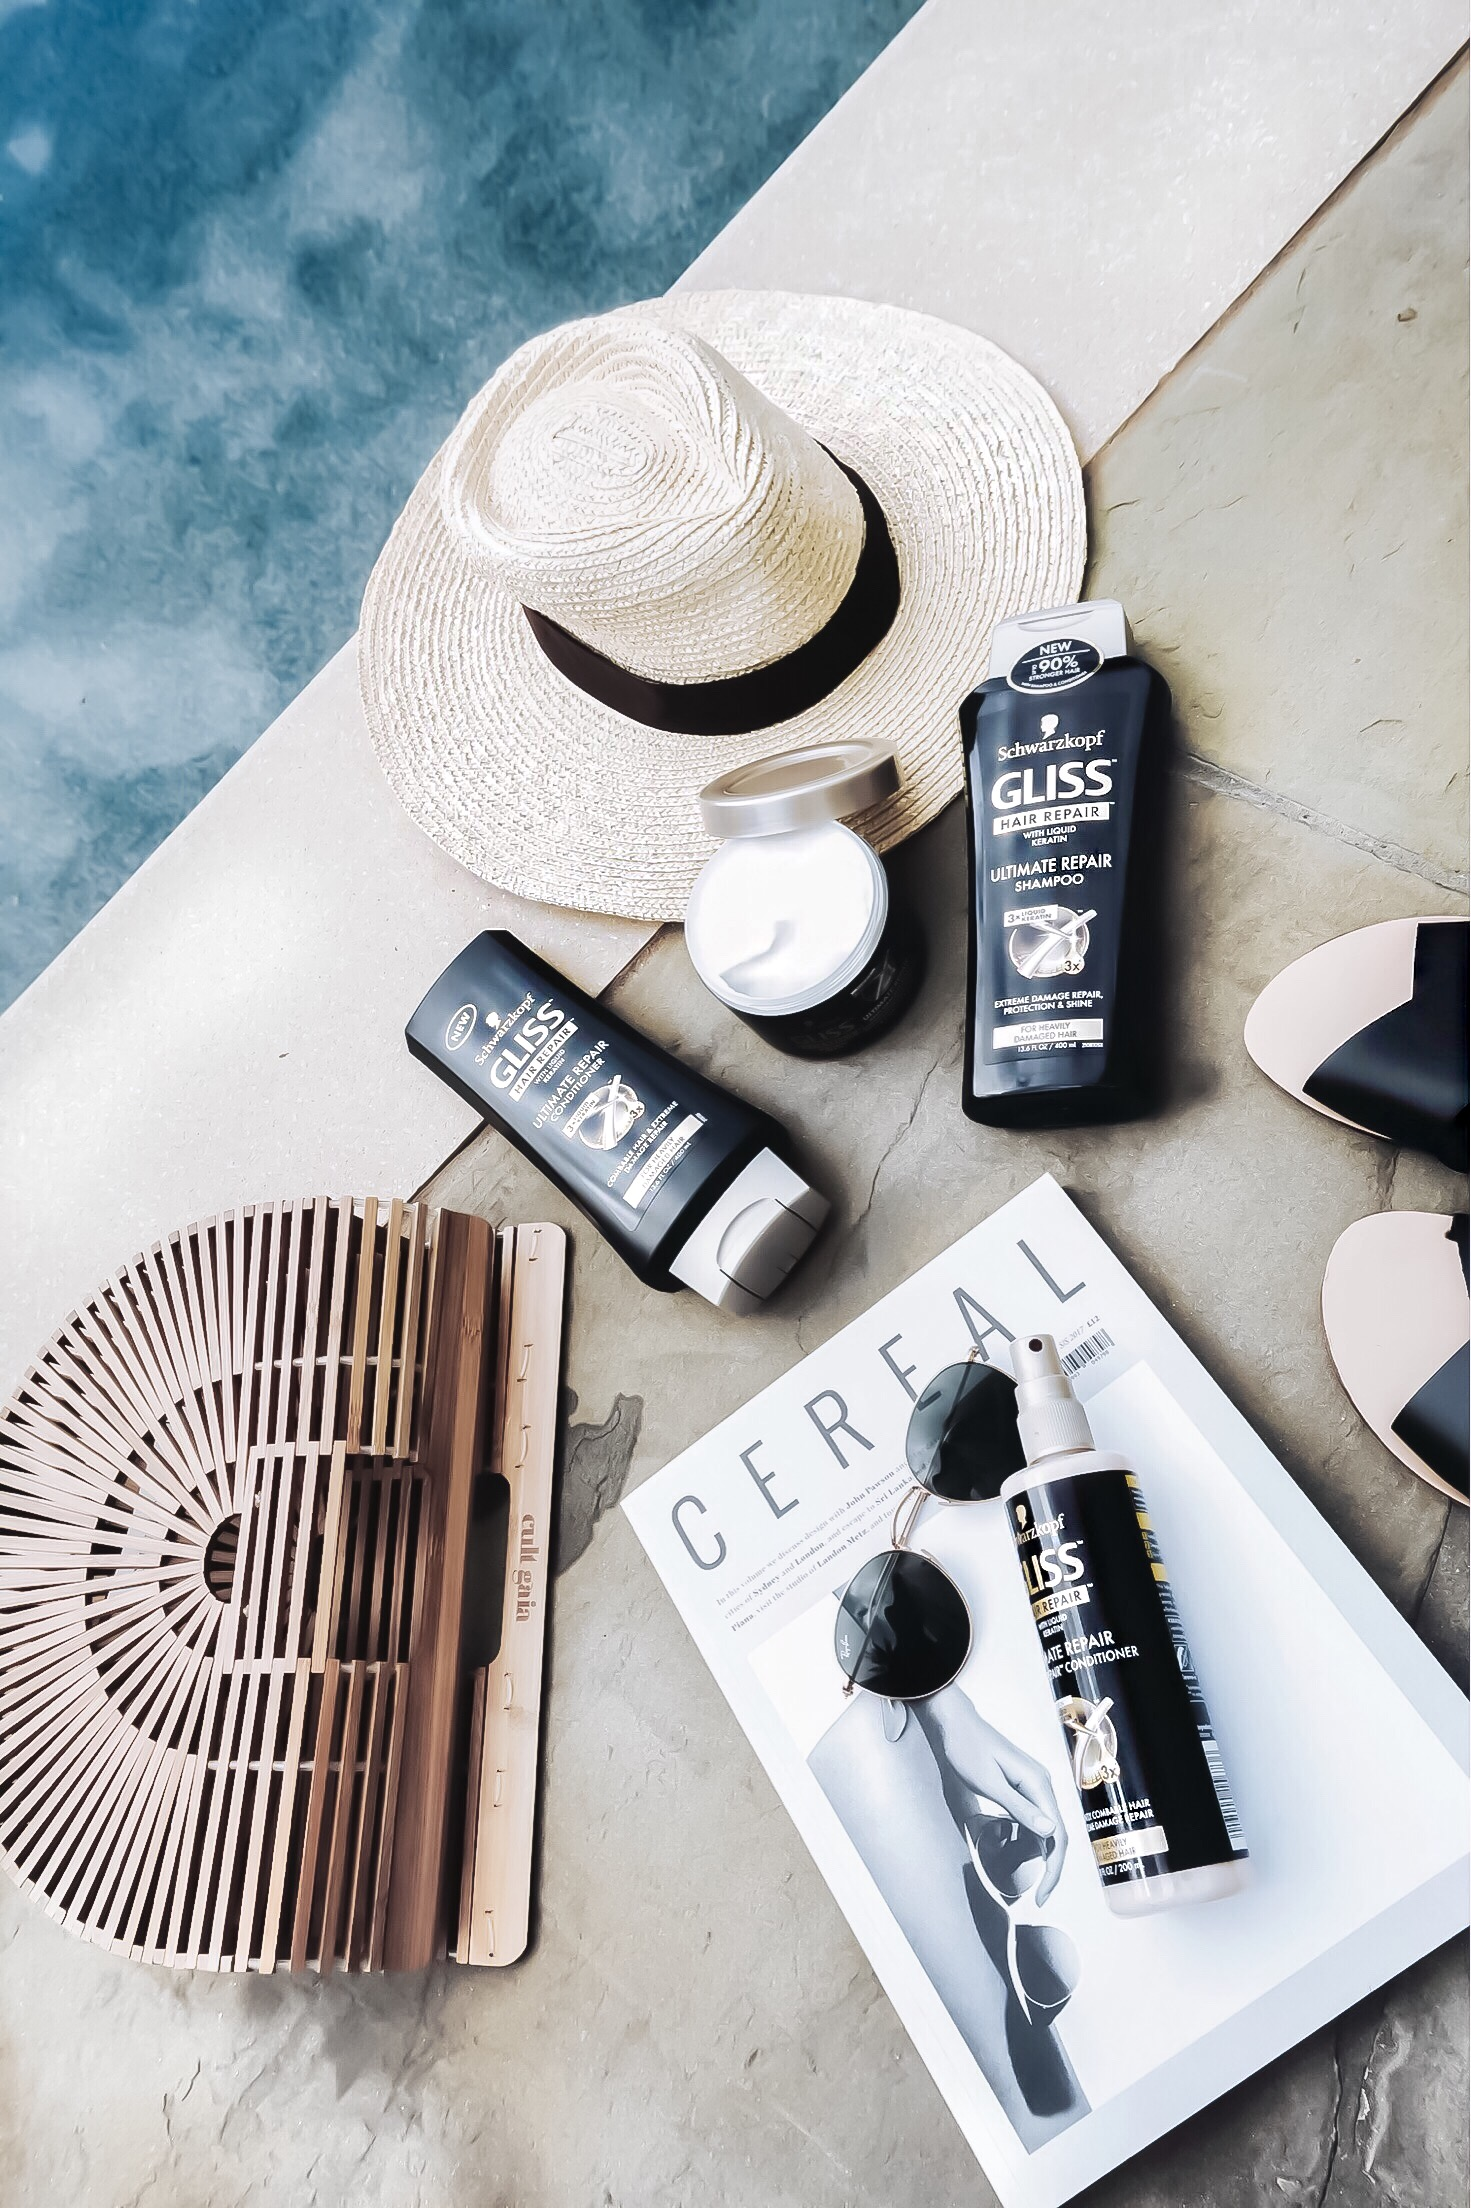 Flaunt and Center fashion blog | Summer hair care with Gliss by Schwarzkopf | flatlay, beauty blogger, summer vibes